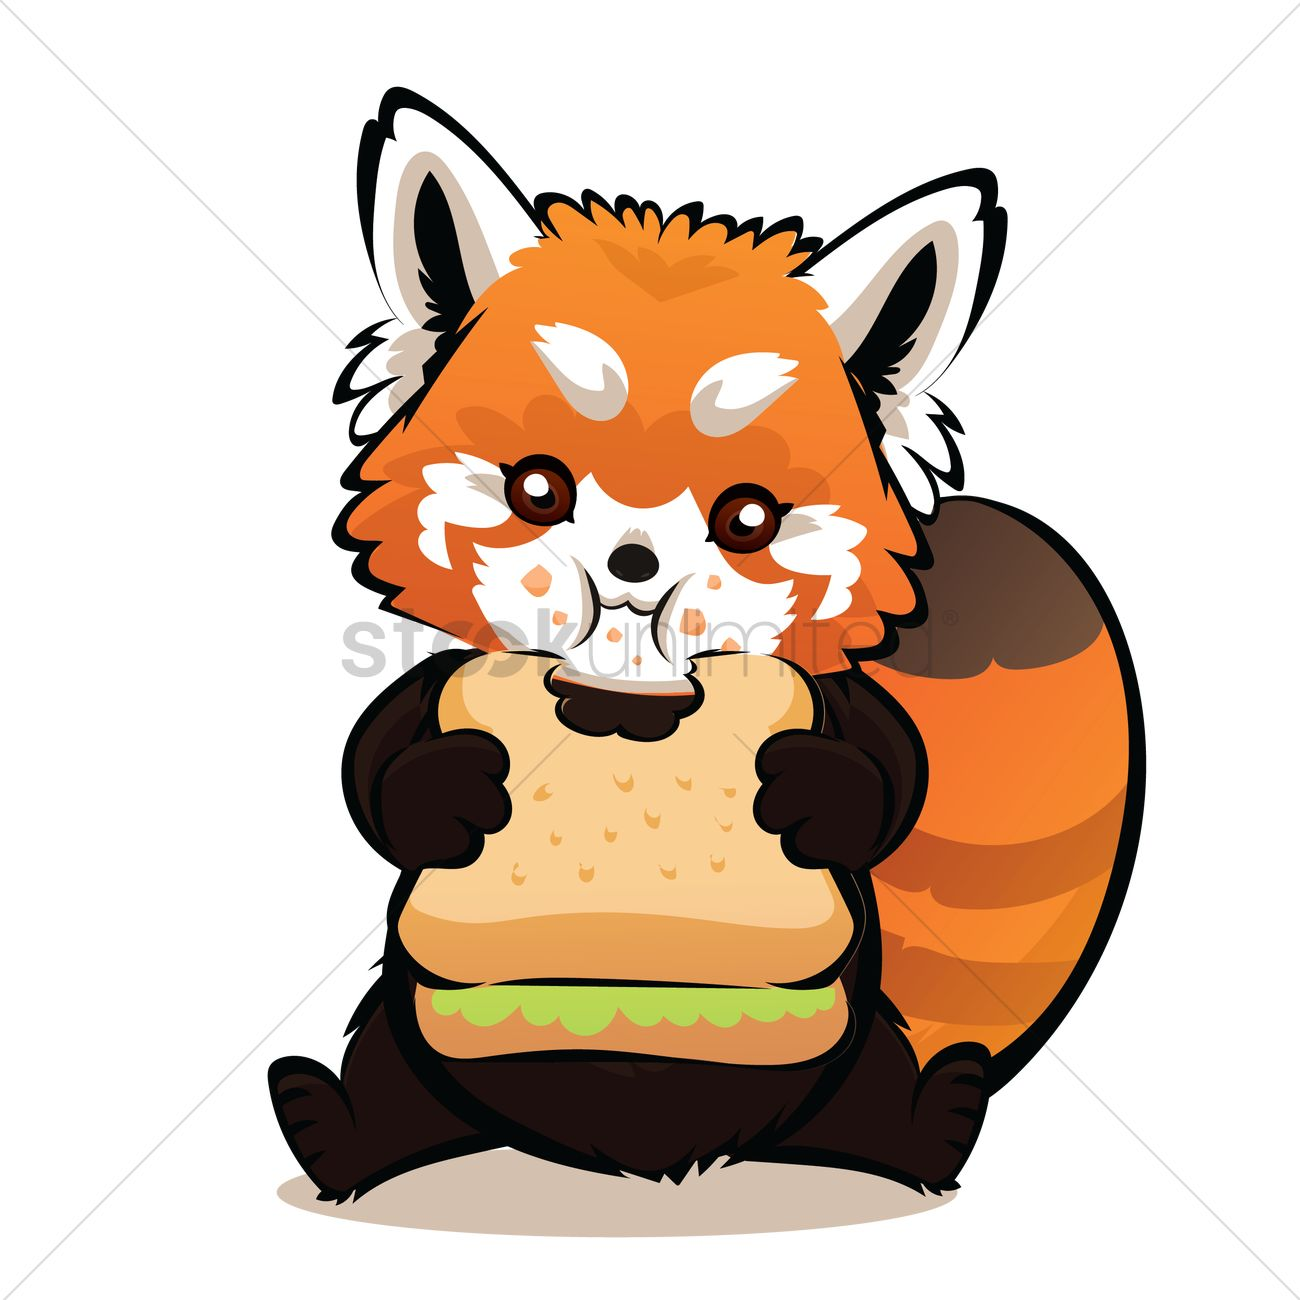 How to draw a cartoon red panda